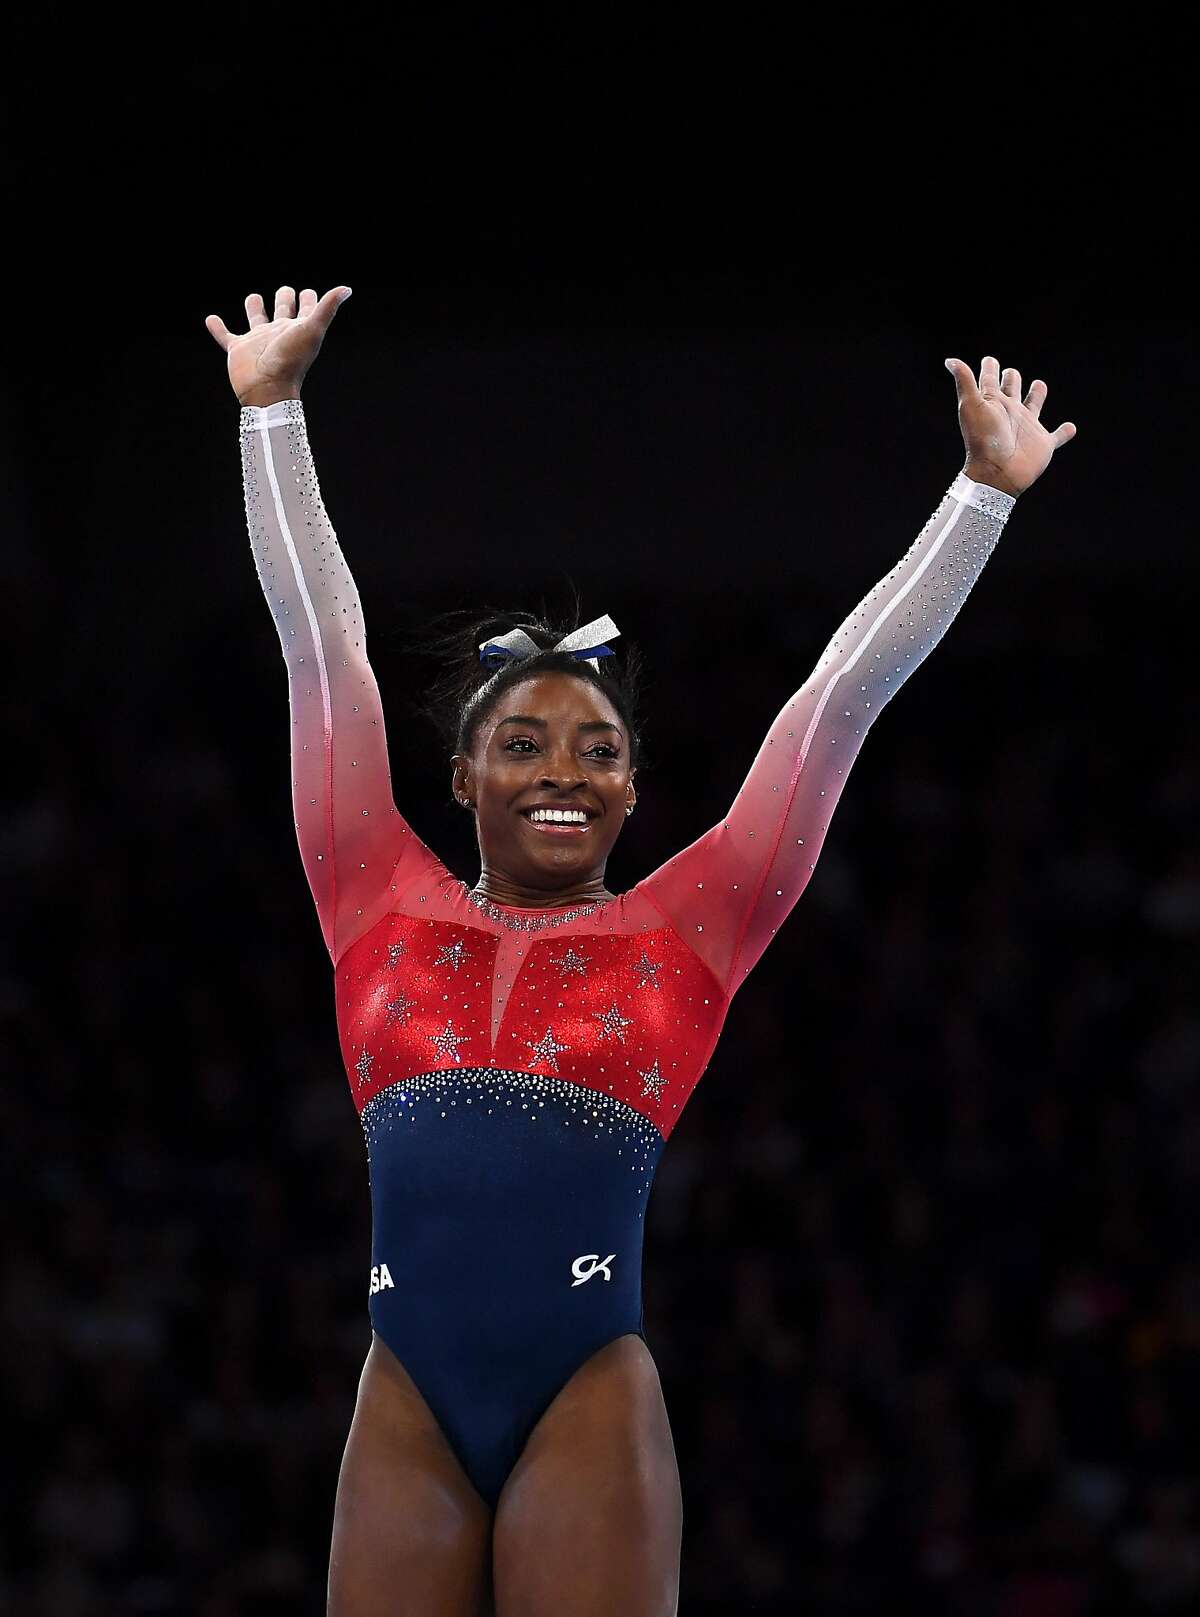 STUTTGART, GERMANY - OCTOBER 08: Simone Biles of USA waves to the crowd after finishing her floor routine during the Women's Team Finals on Day 5 of FIG Artistic Gymnastics World Championships on October 08, 2019 in Stuttgart, Germany. (Photo by Laurence Griffiths/Getty Images)